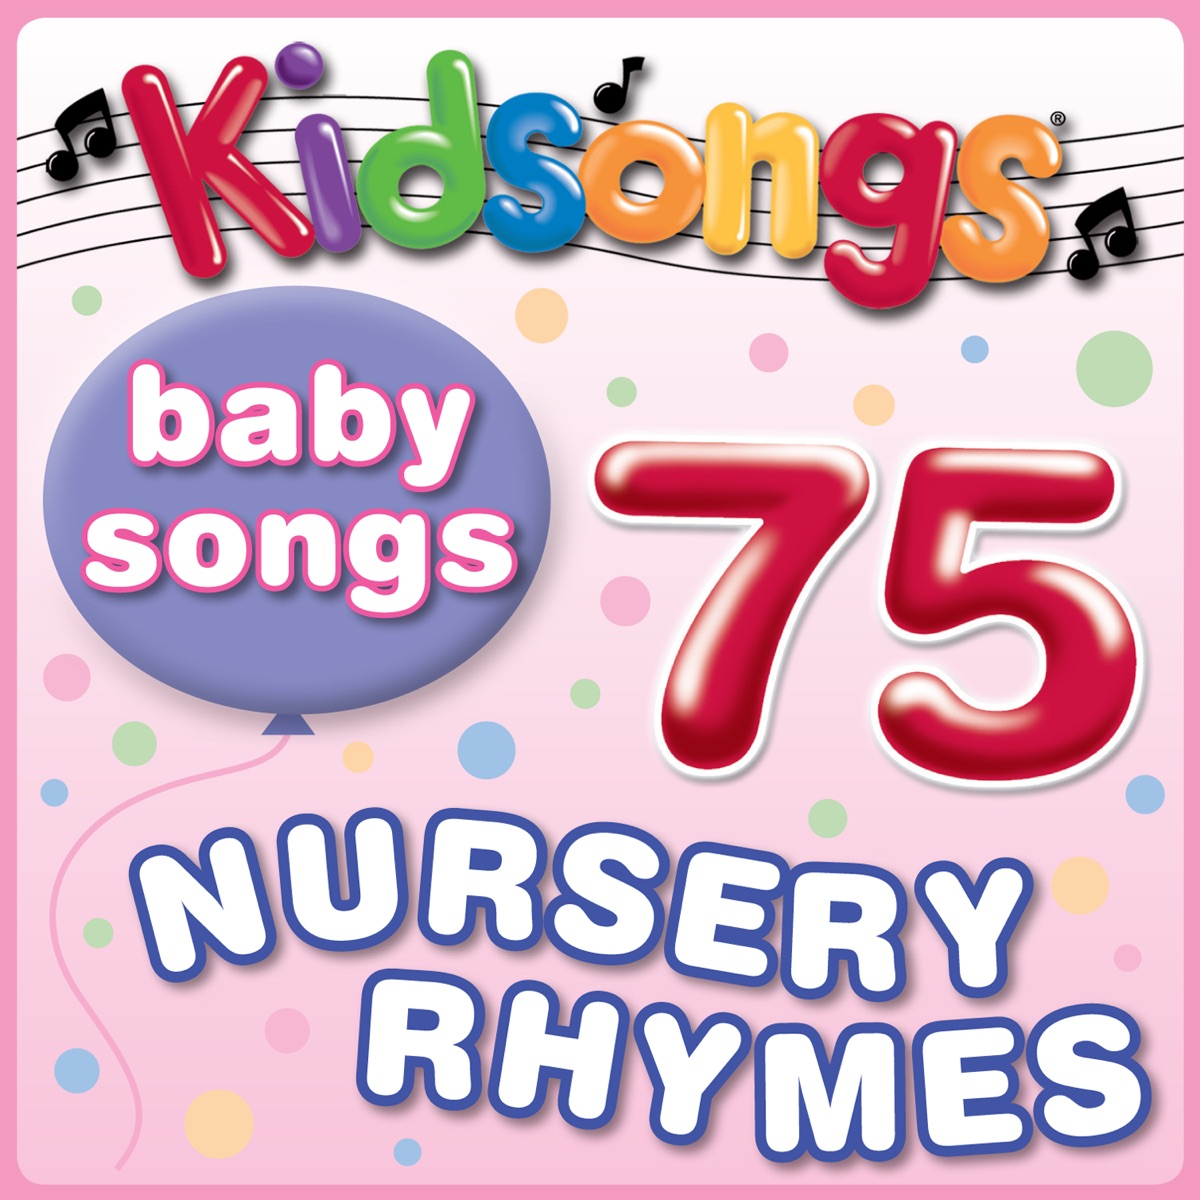 Baby Songs - 75 Nursery Rhymes Album Cover by Kidsongs